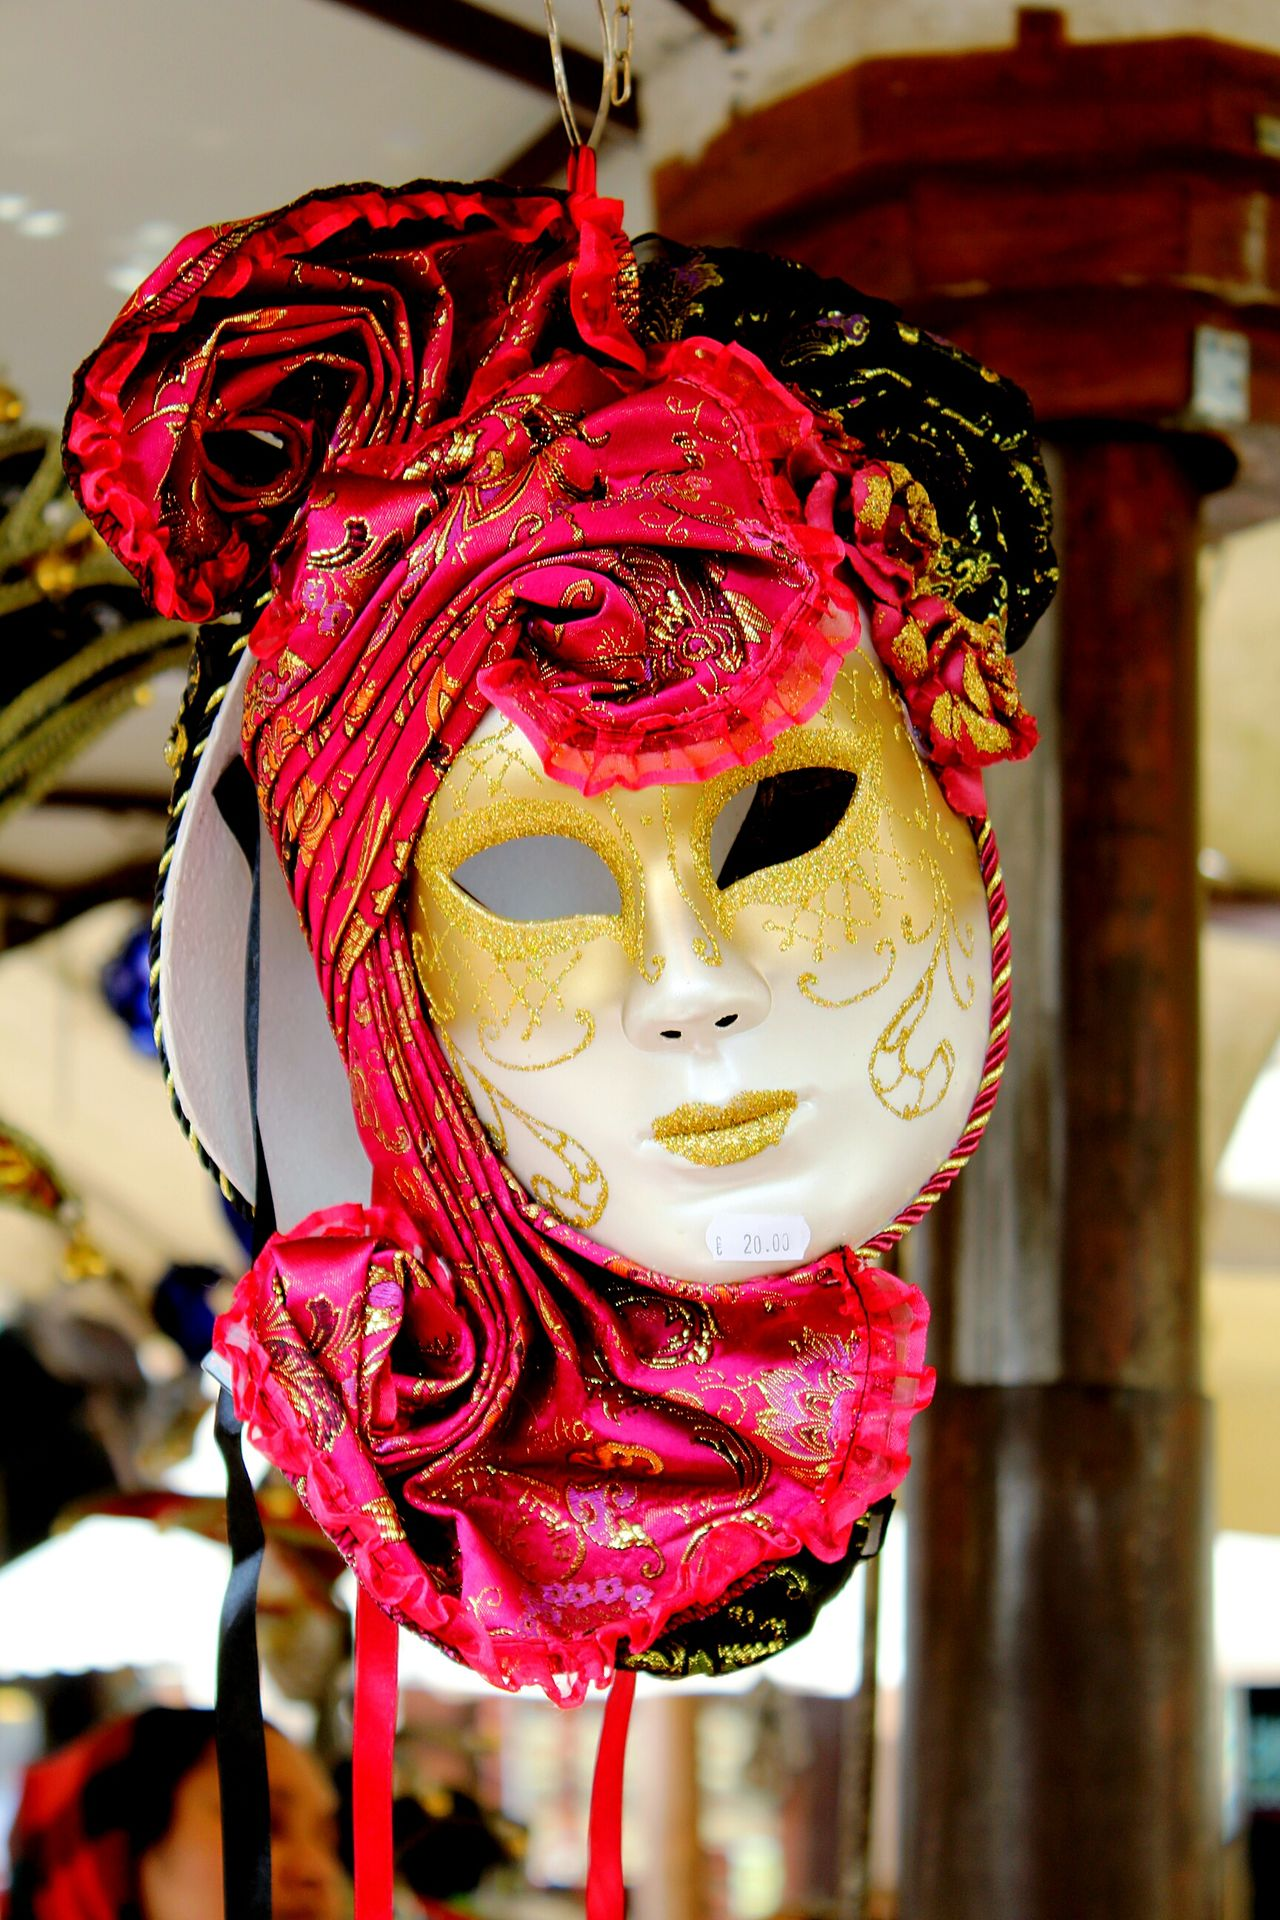 Mask Carneval Carnevale Di Venezia Venetian Mask Venice, Italy Venice Arts Culture And Entertainment Culture Italy Colourful Colorful Bright Bright Colors Art Is Everywhere The Photojournalist - 2017 EyeEm Awards